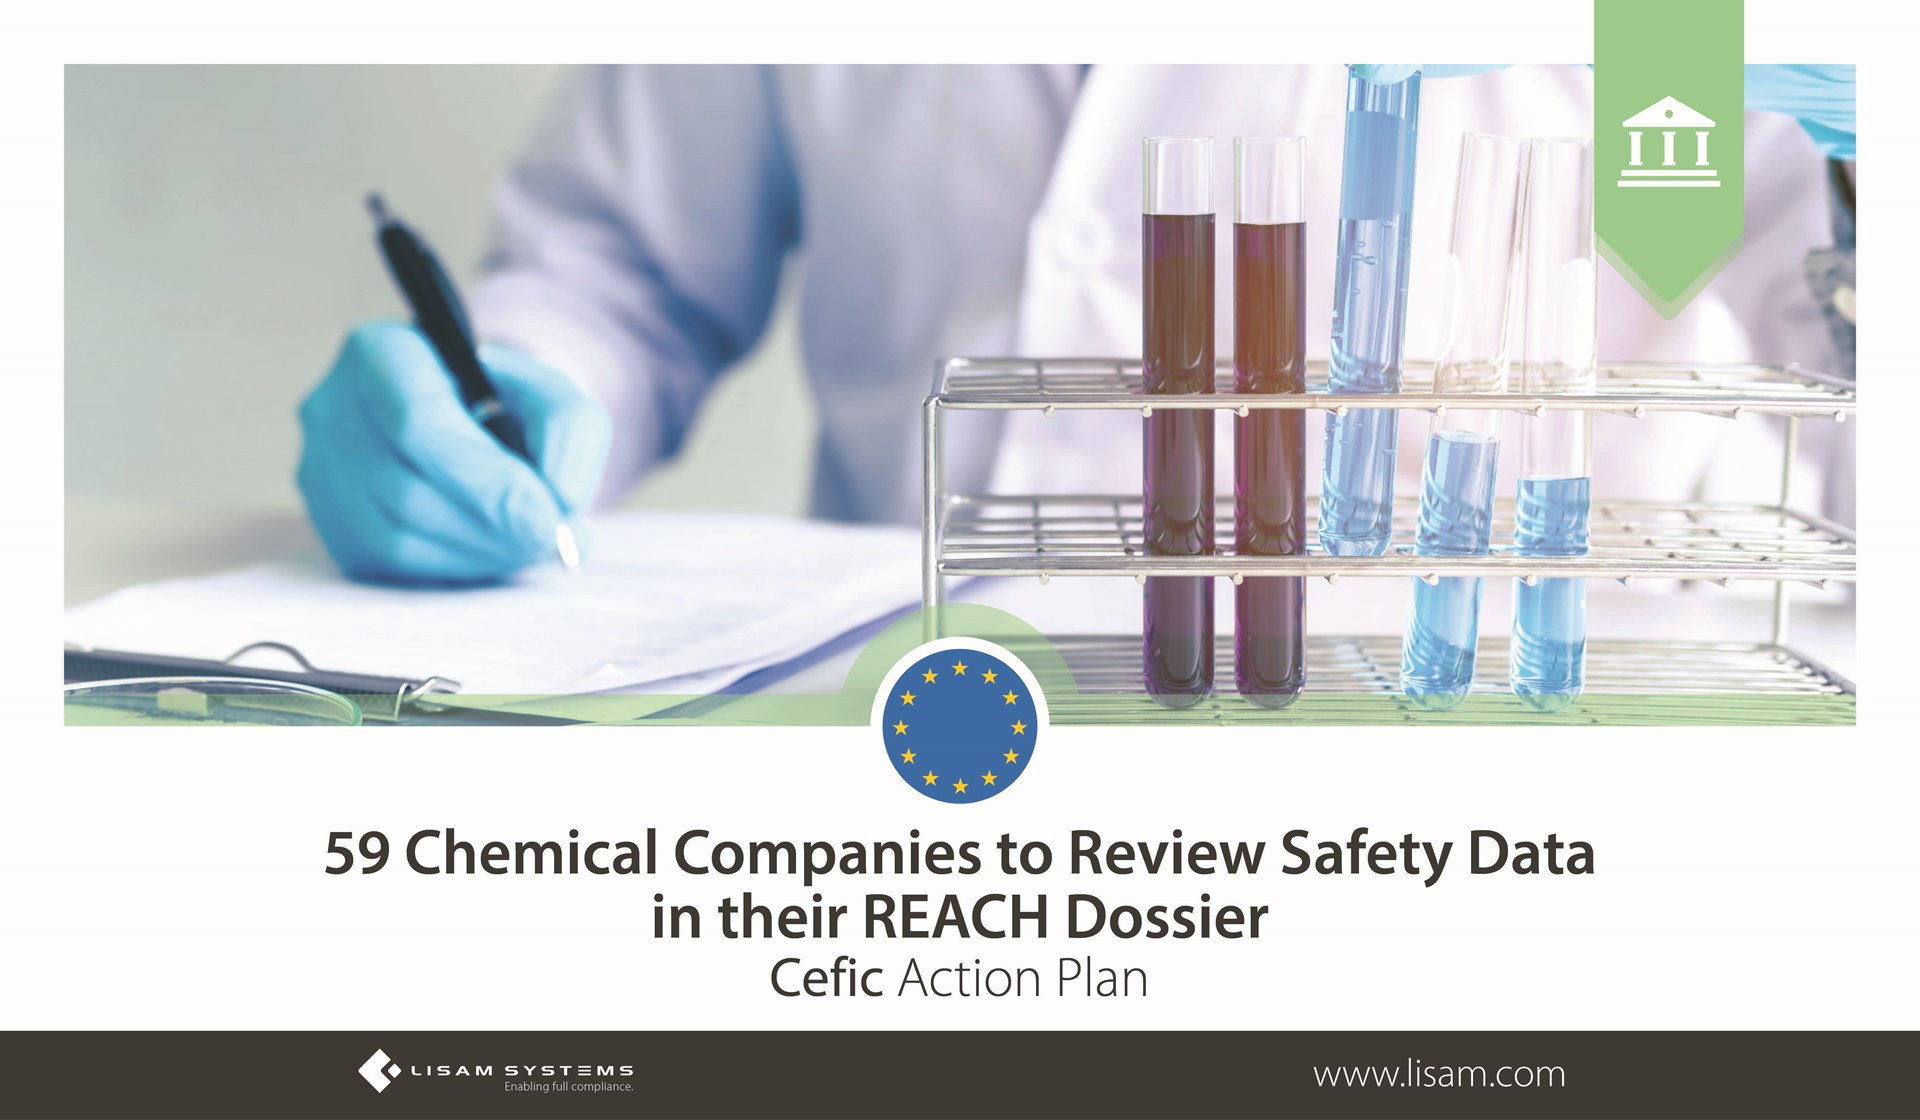 59 Chemical Companies to Review Safety Data in their REACH